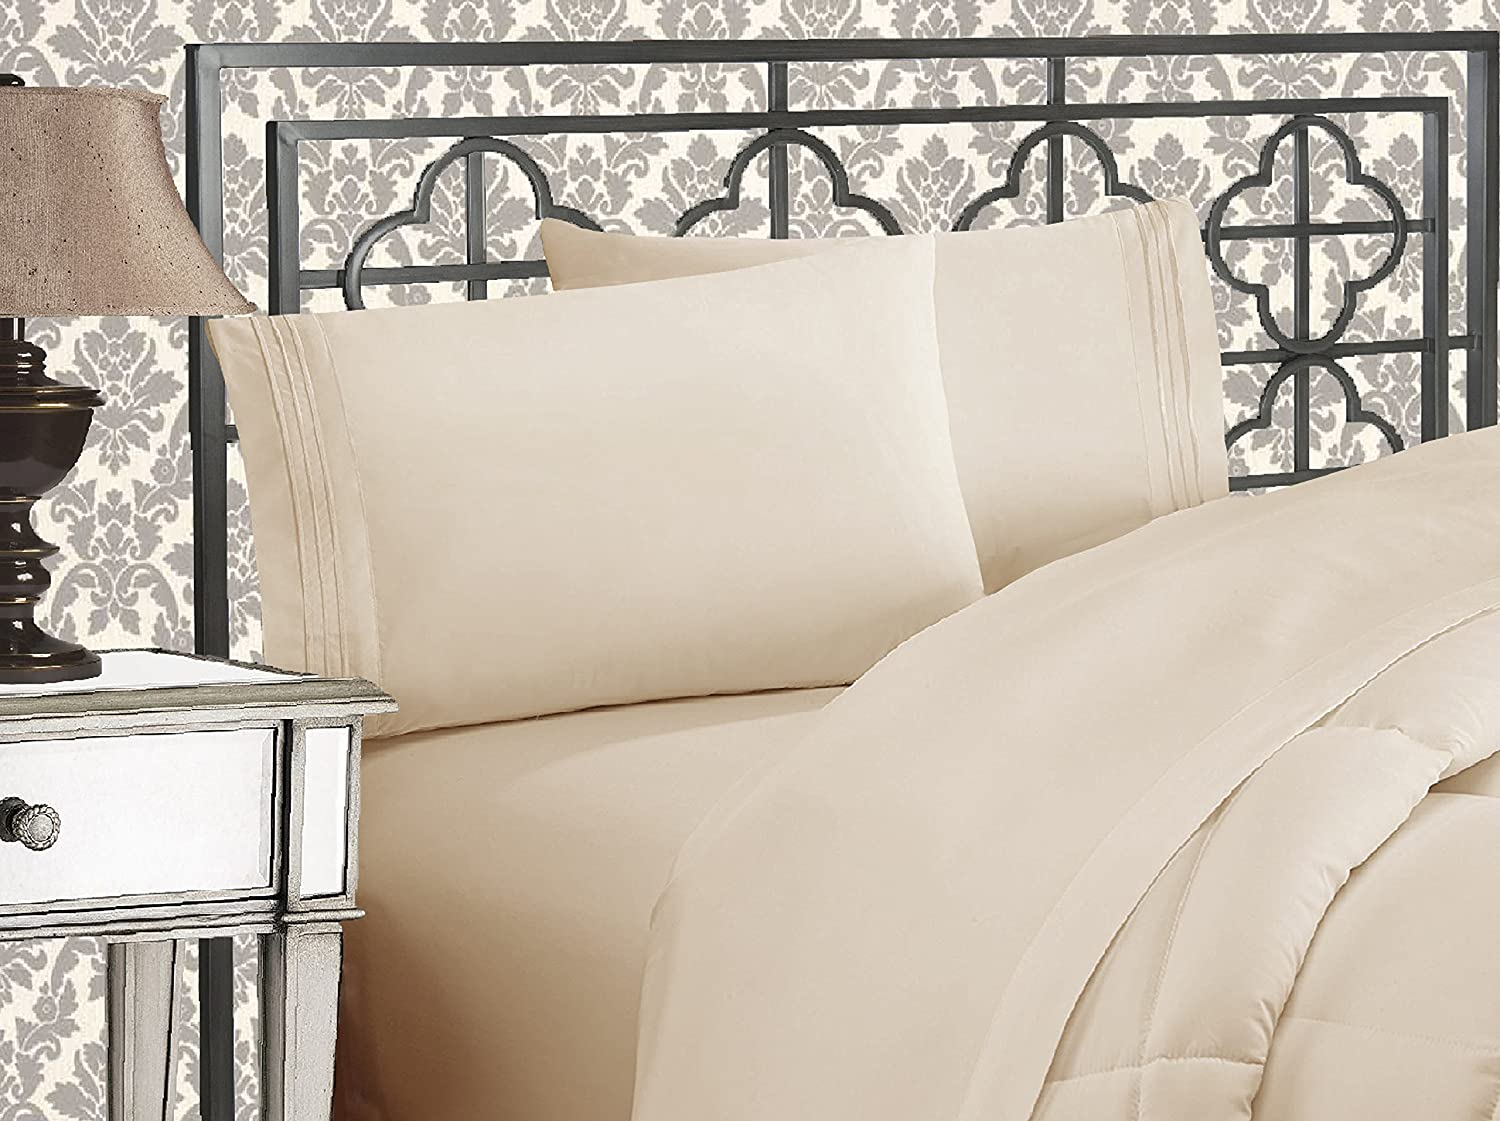 Elegant Comfort Luxurious & Softest 1500 Thread Count Egyptian Three Line Embroidered Softest Premium Hotel Quality 4-Piece Bed Sheet Set, Wrinkle and Fade Resistant Queen Cream